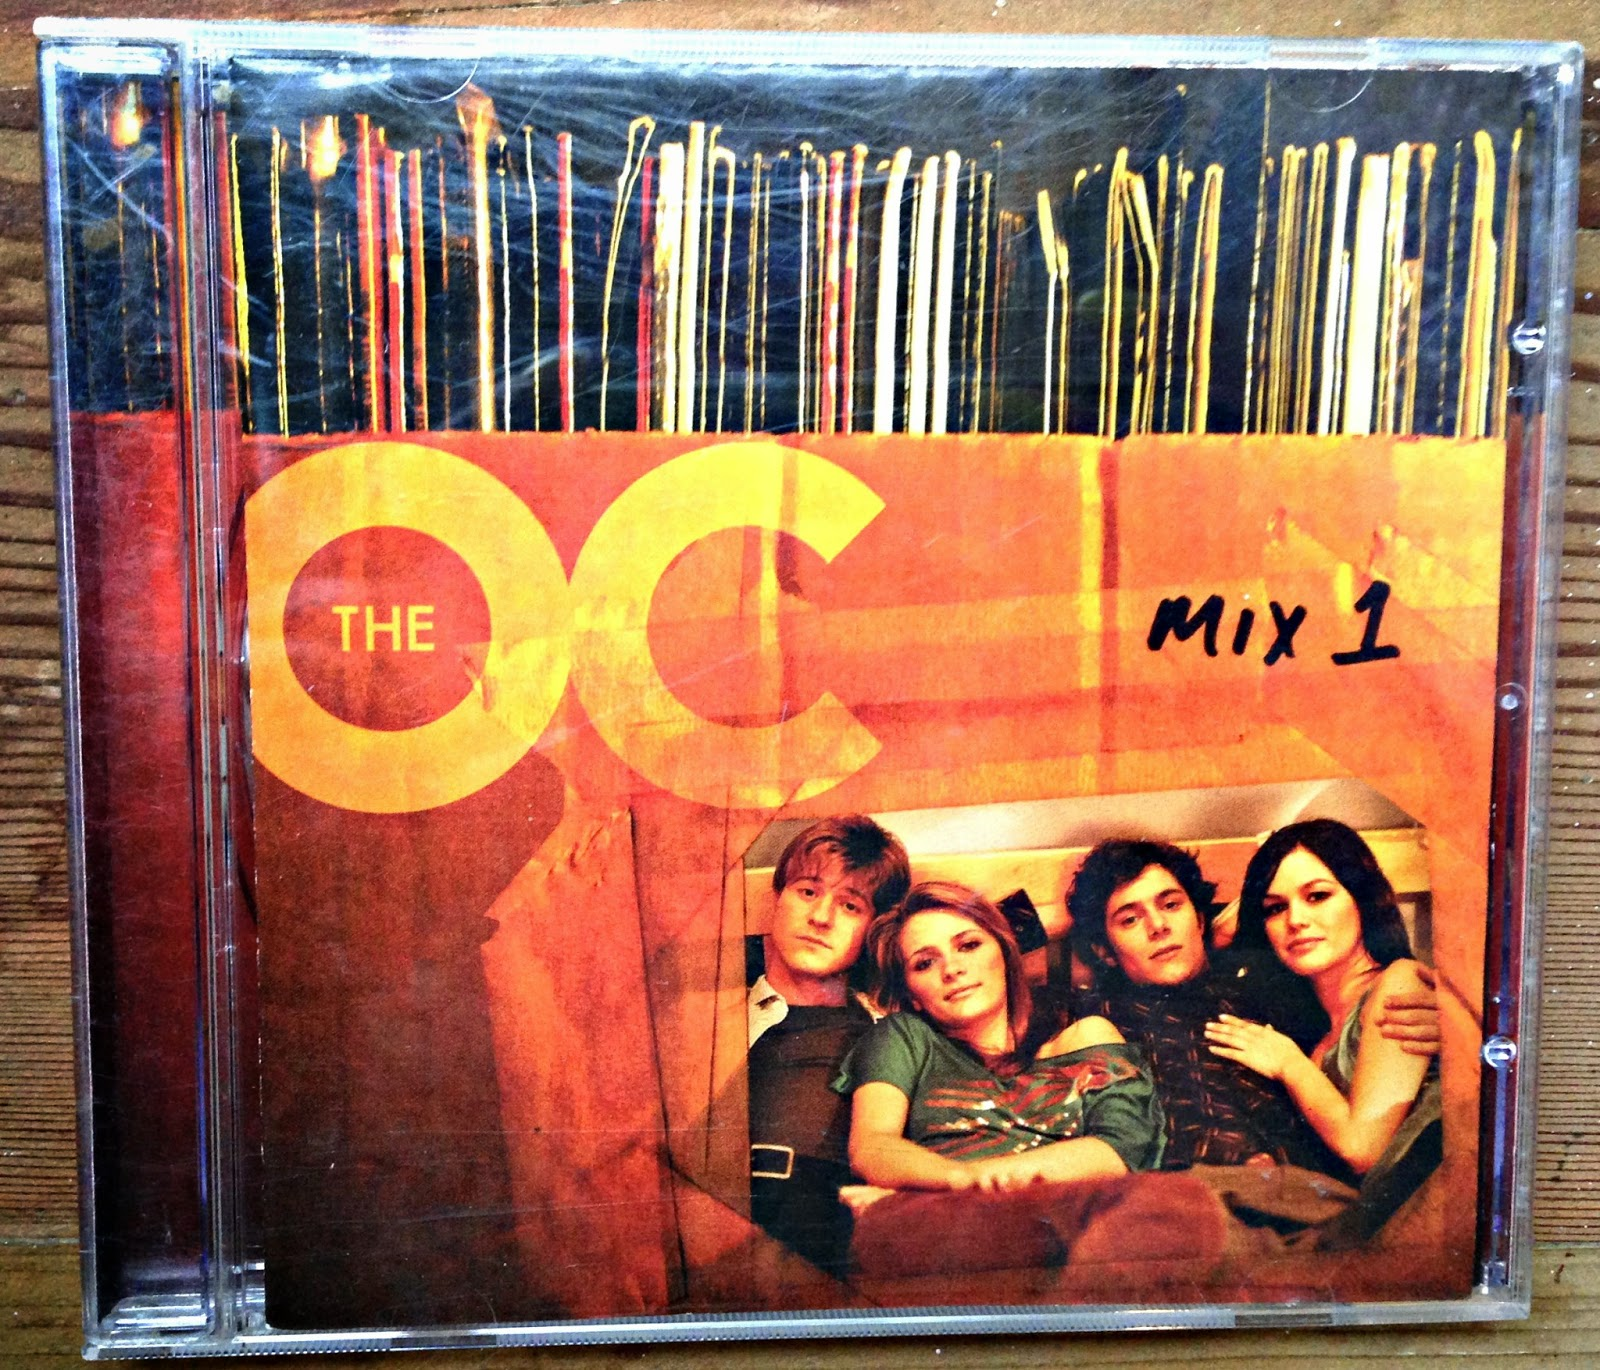 The OC Mix 1 Album